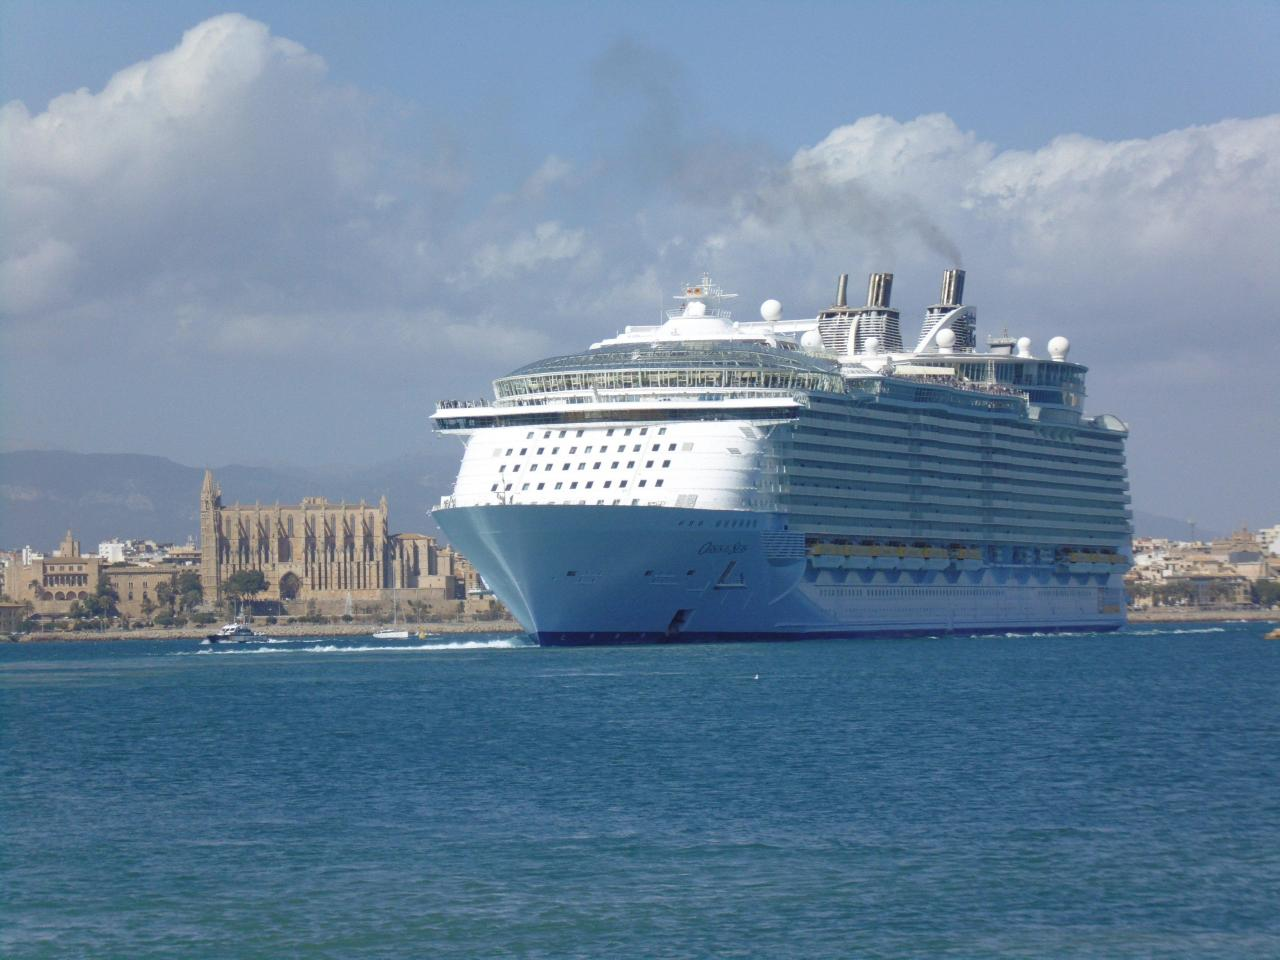 Cruiser ships could be arriving soon in Palma